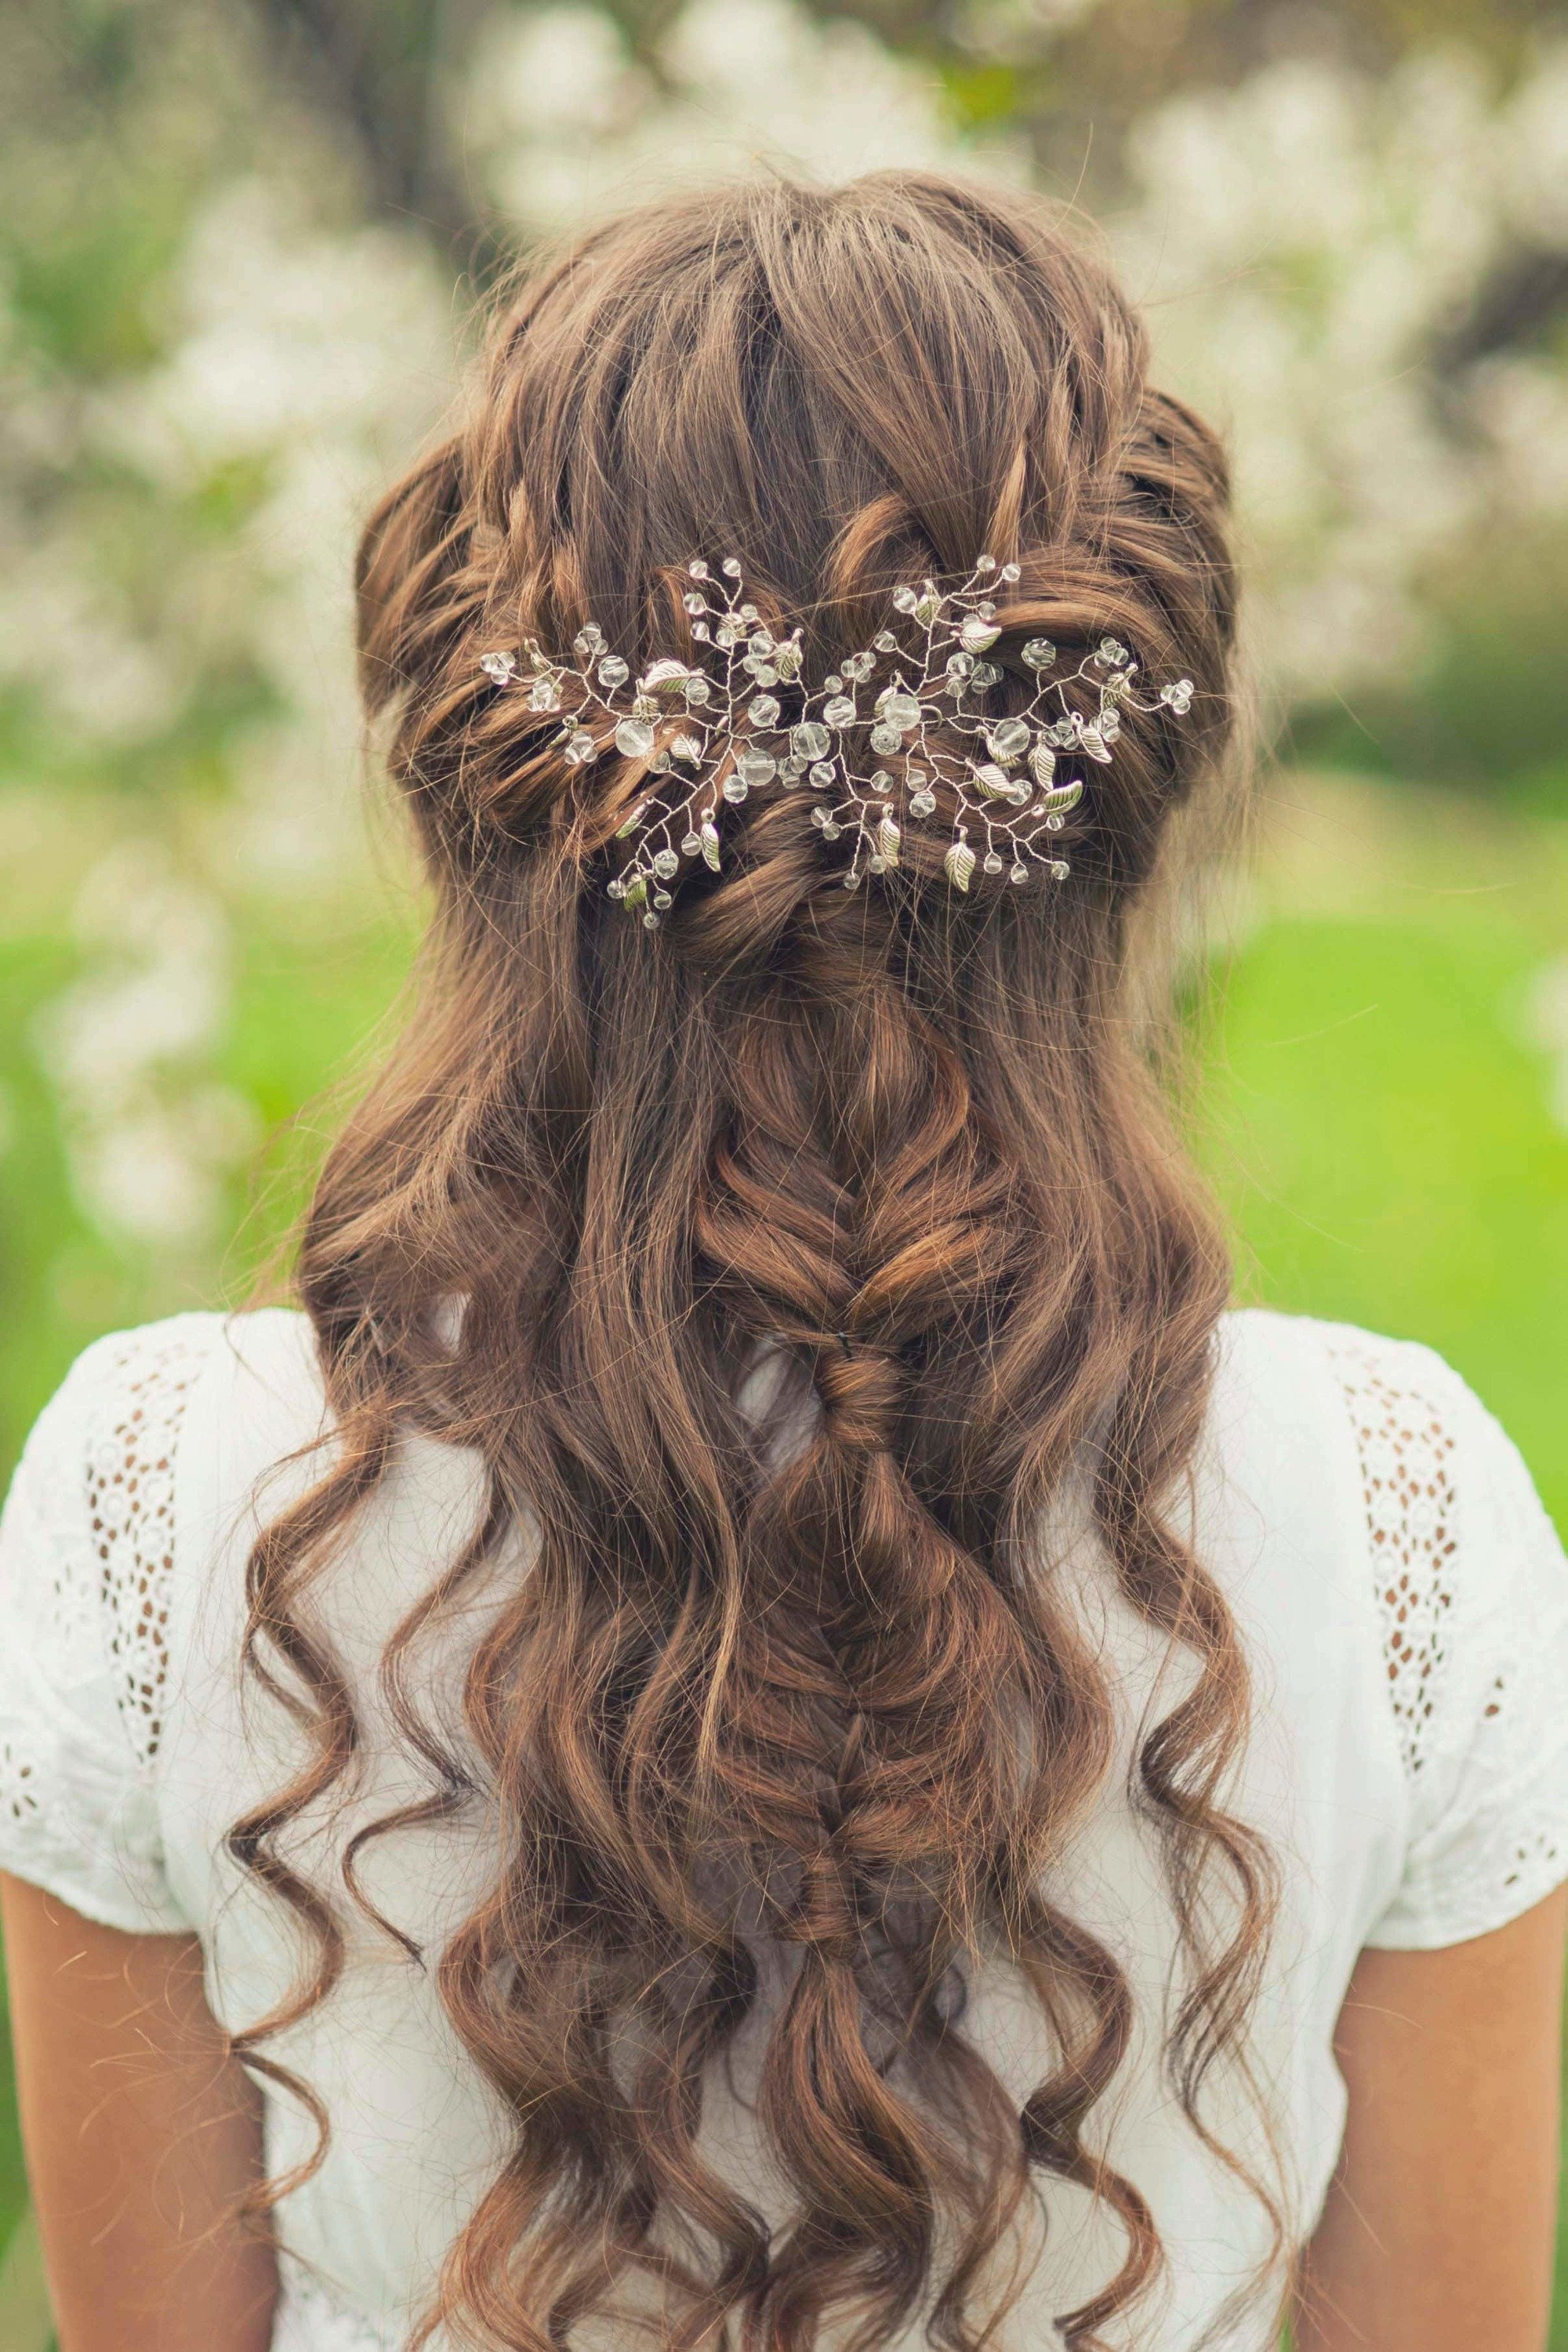 half up half down wedding hairstyles: 42 charming looks for every bride